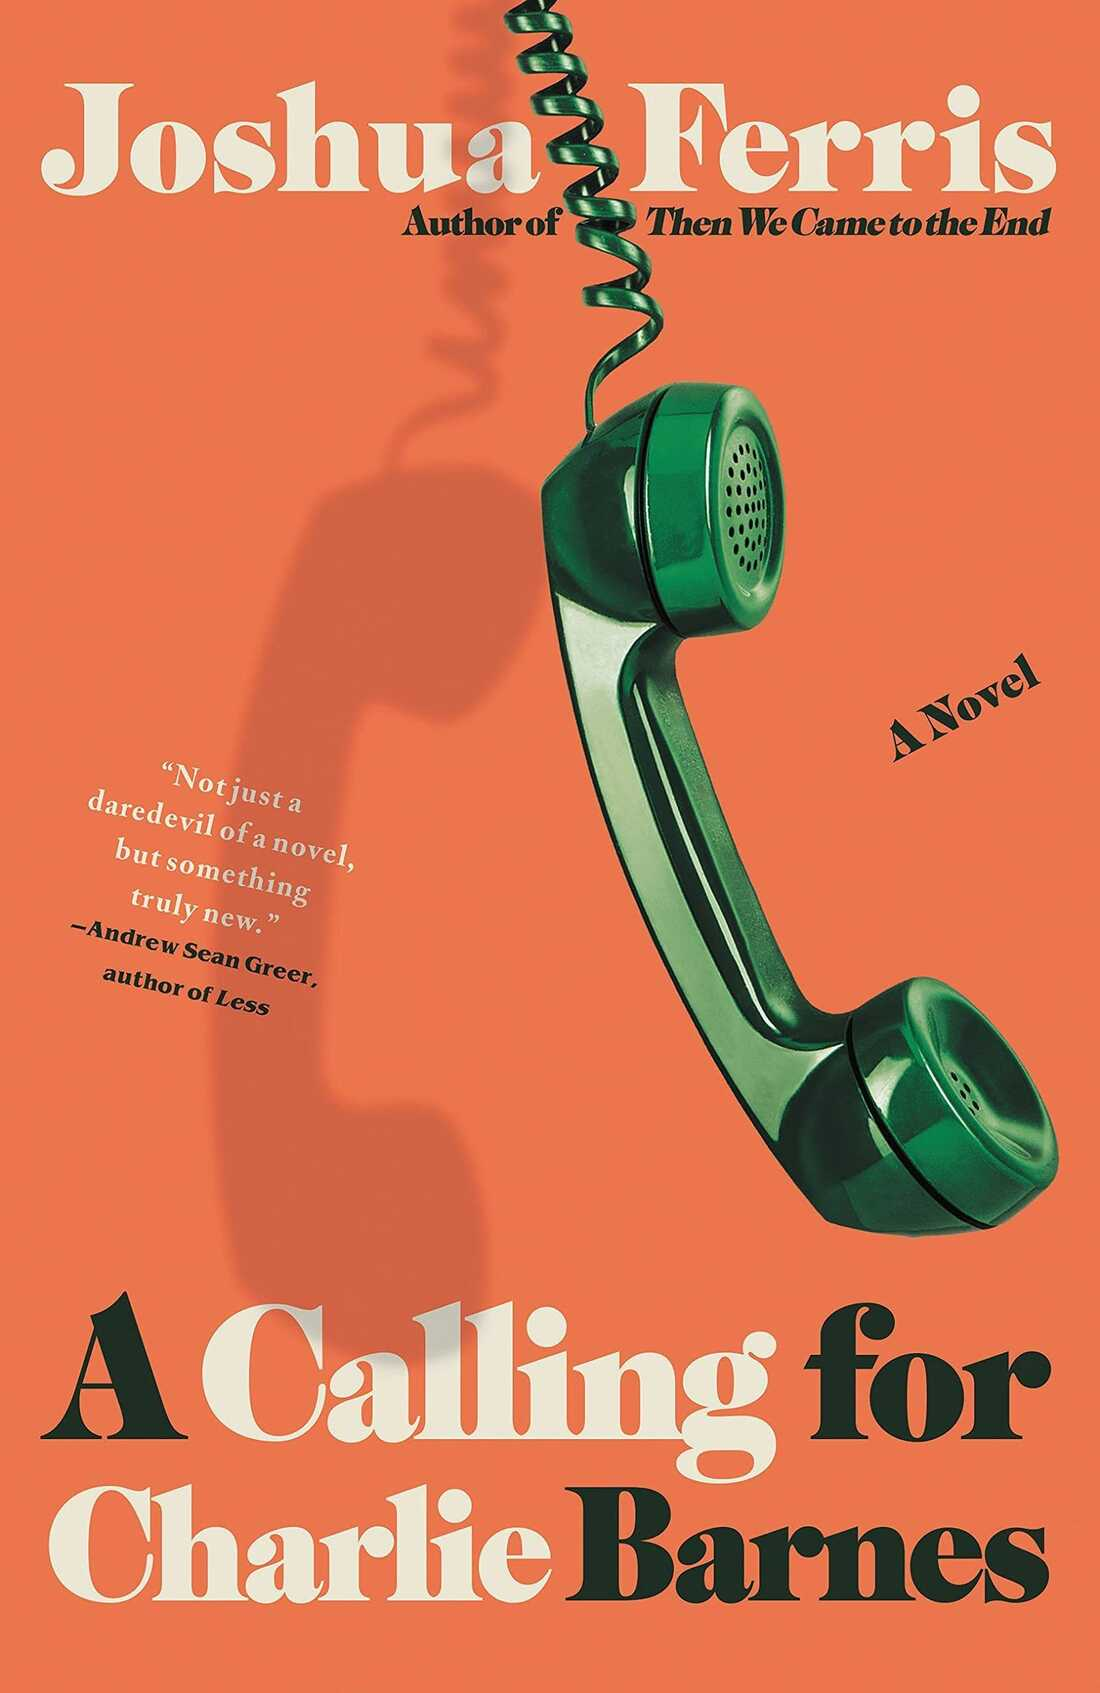 A Calling for Charlie Barnes, by Joshua Ferris